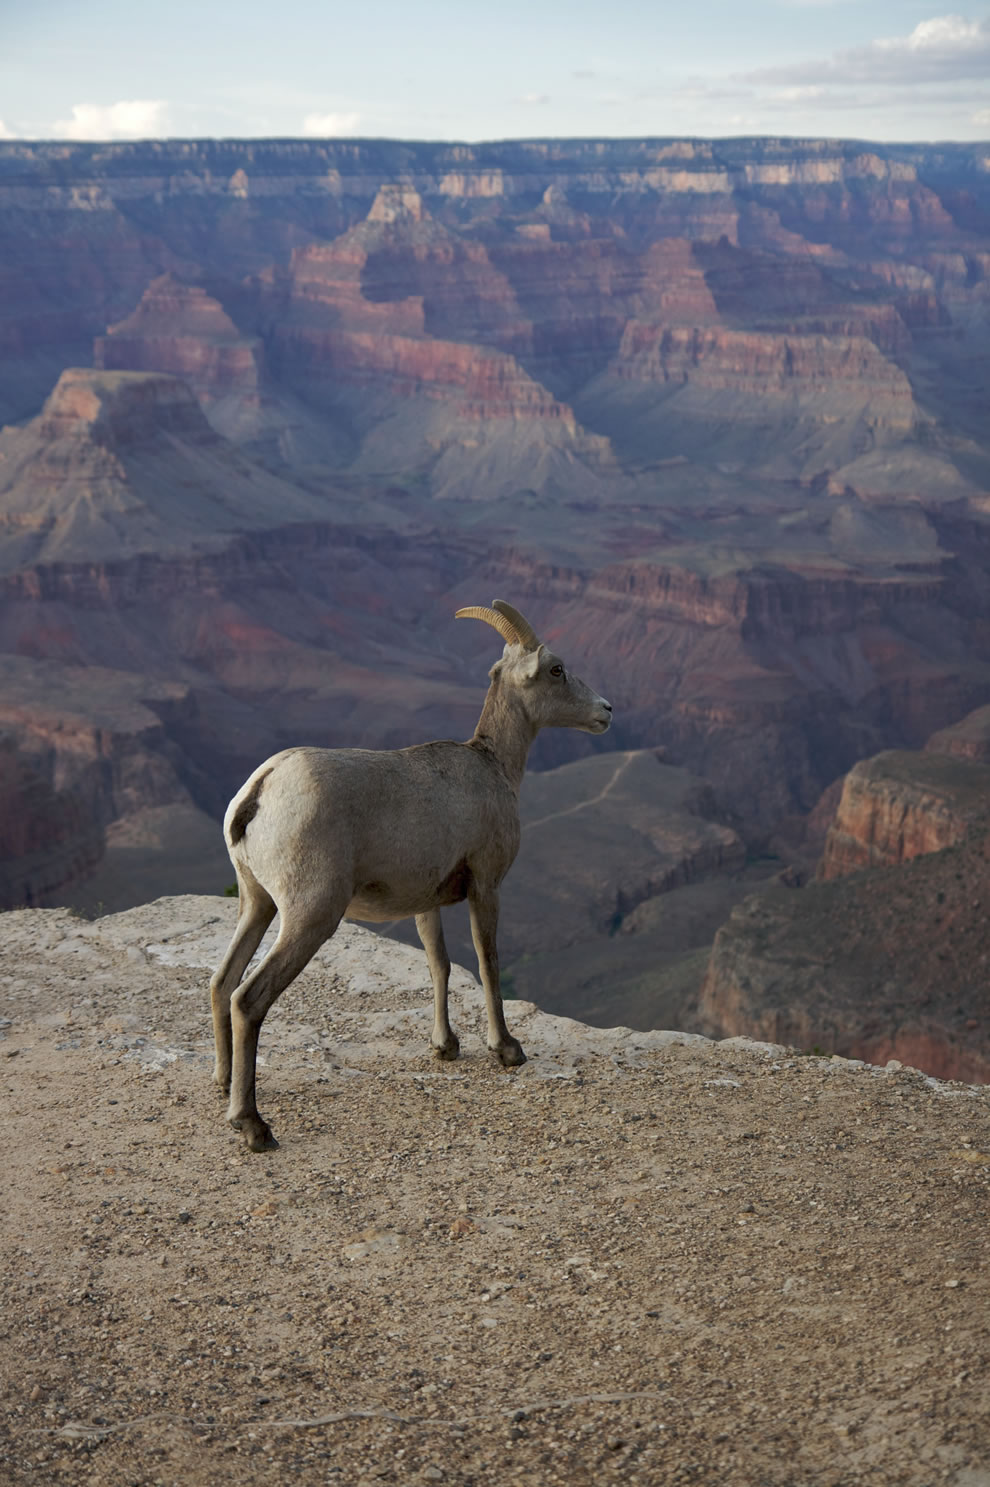 Mountain-goat-Bighorn-Grand-Canyon.jpg